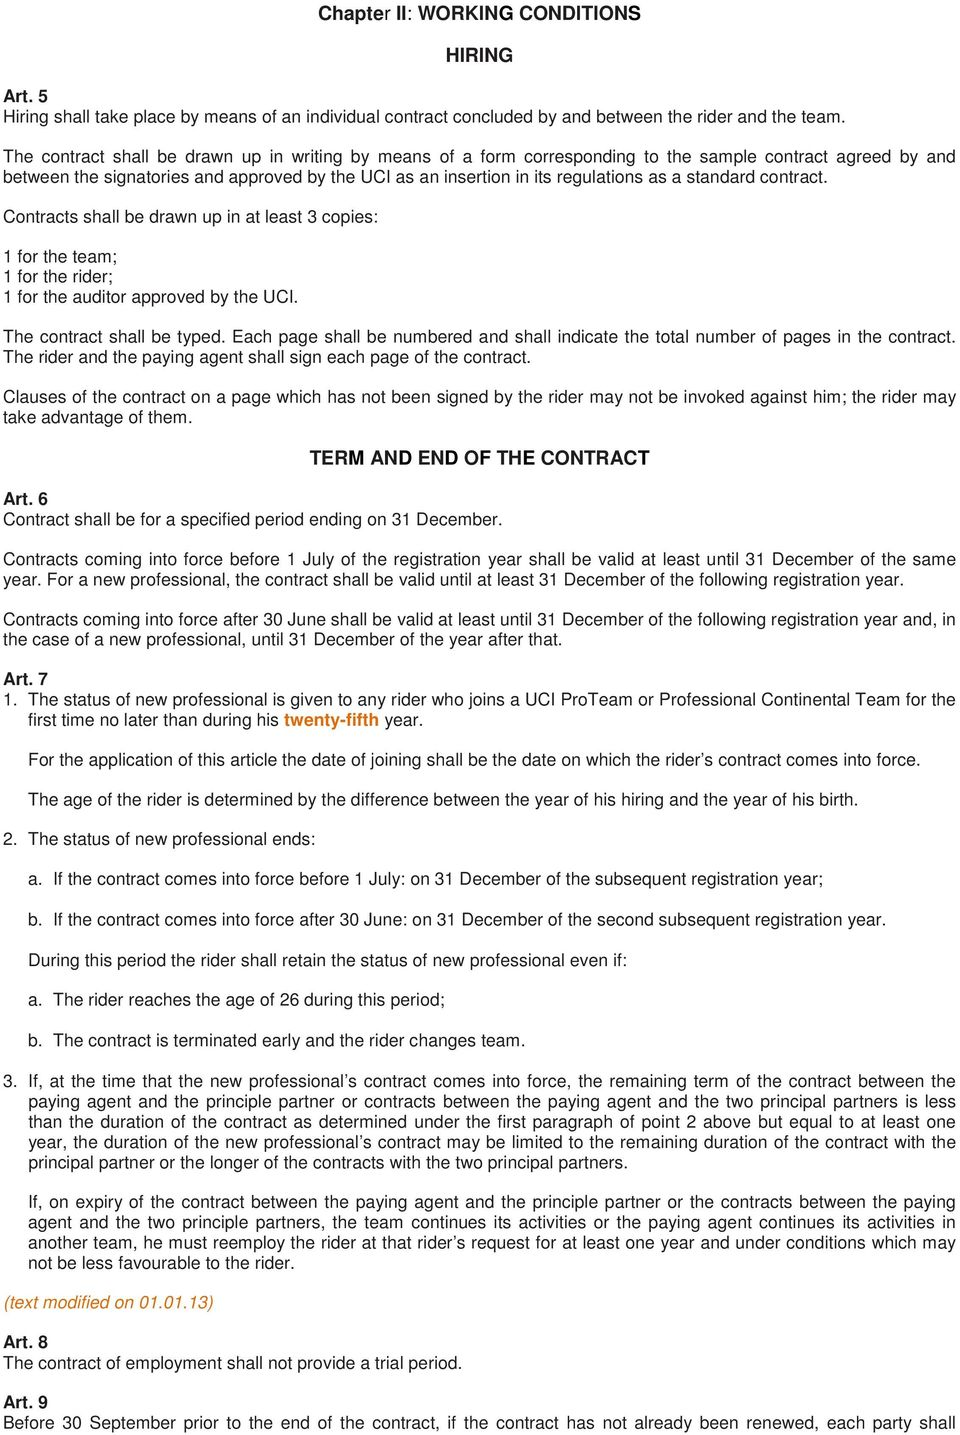 standard contract. Contracts shall be drawn up in at least 3 copies: 1 for the team; 1 for the rider; 1 for the auditor approved by the UCI. The contract shall be typed.